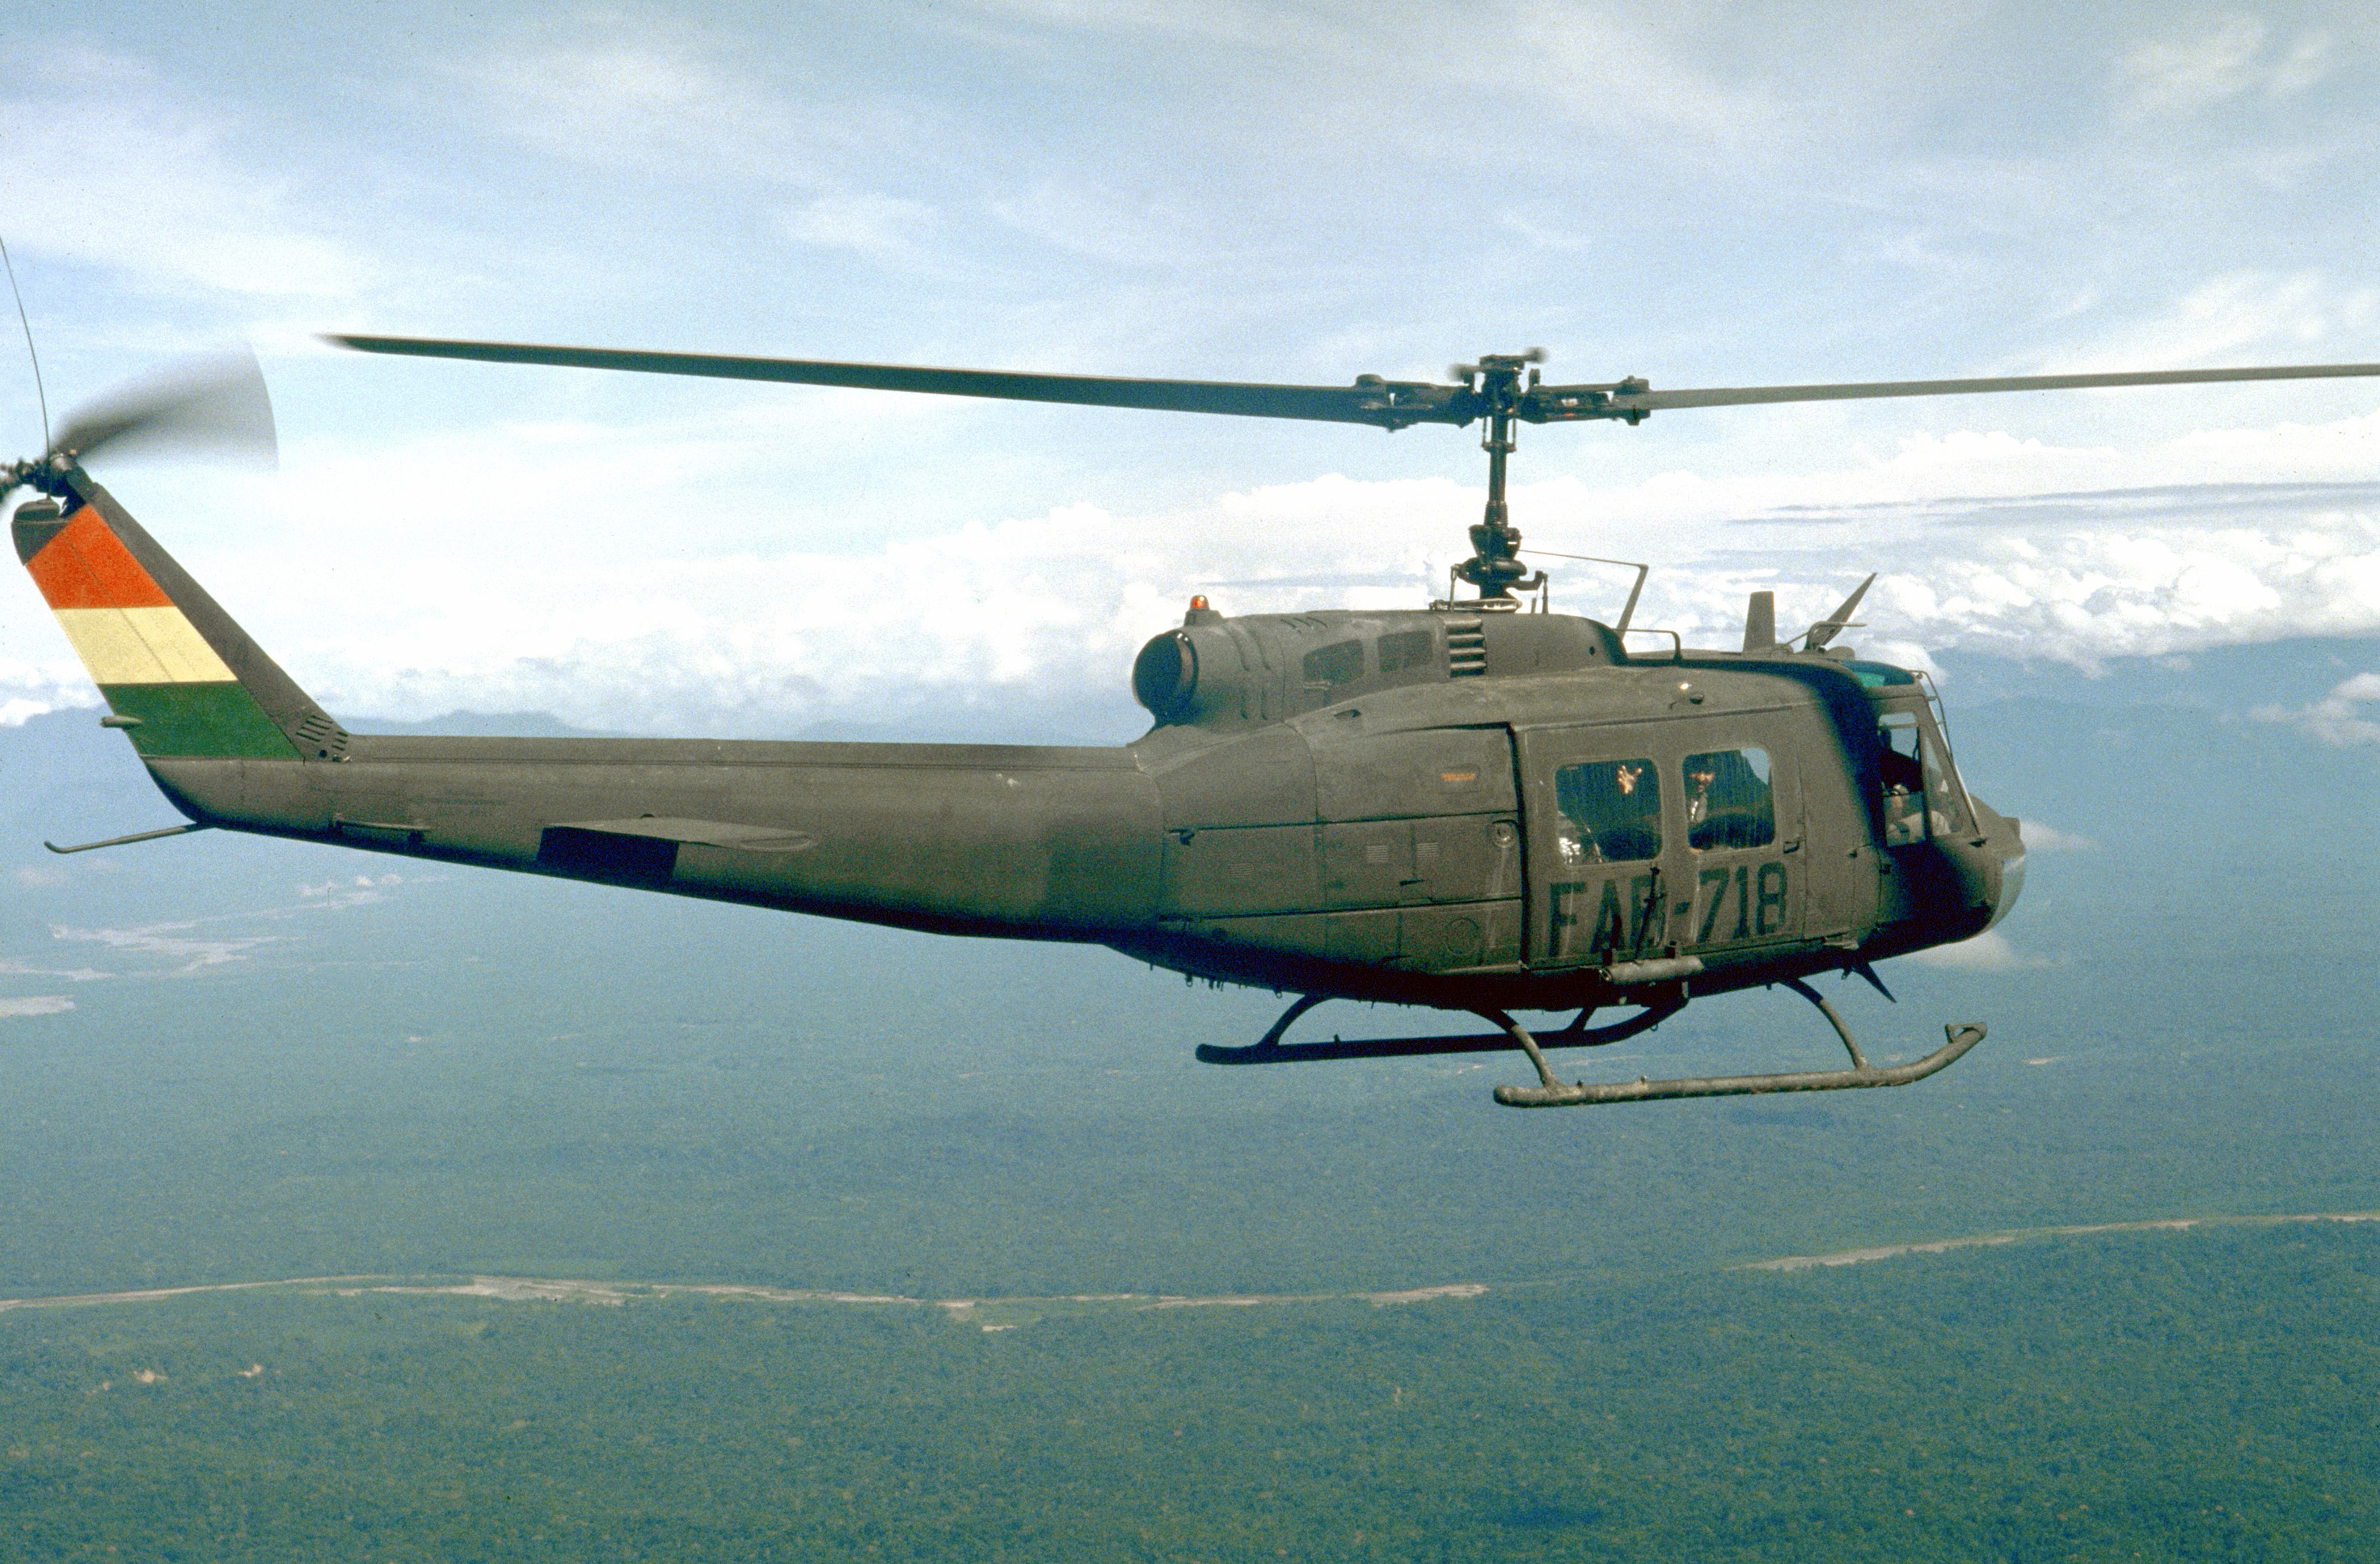 united states helicopters with File Uh 1h Bolivian Air Force In Flight 1987 on File Day Fire Helitack 01 likewise Usslangleycv 1 besides Initial Attack moreover 7 Facts Of The Uh 60 Black Hawk Helicopter together with Uh 60 Blackhawk Helicopter 93546.